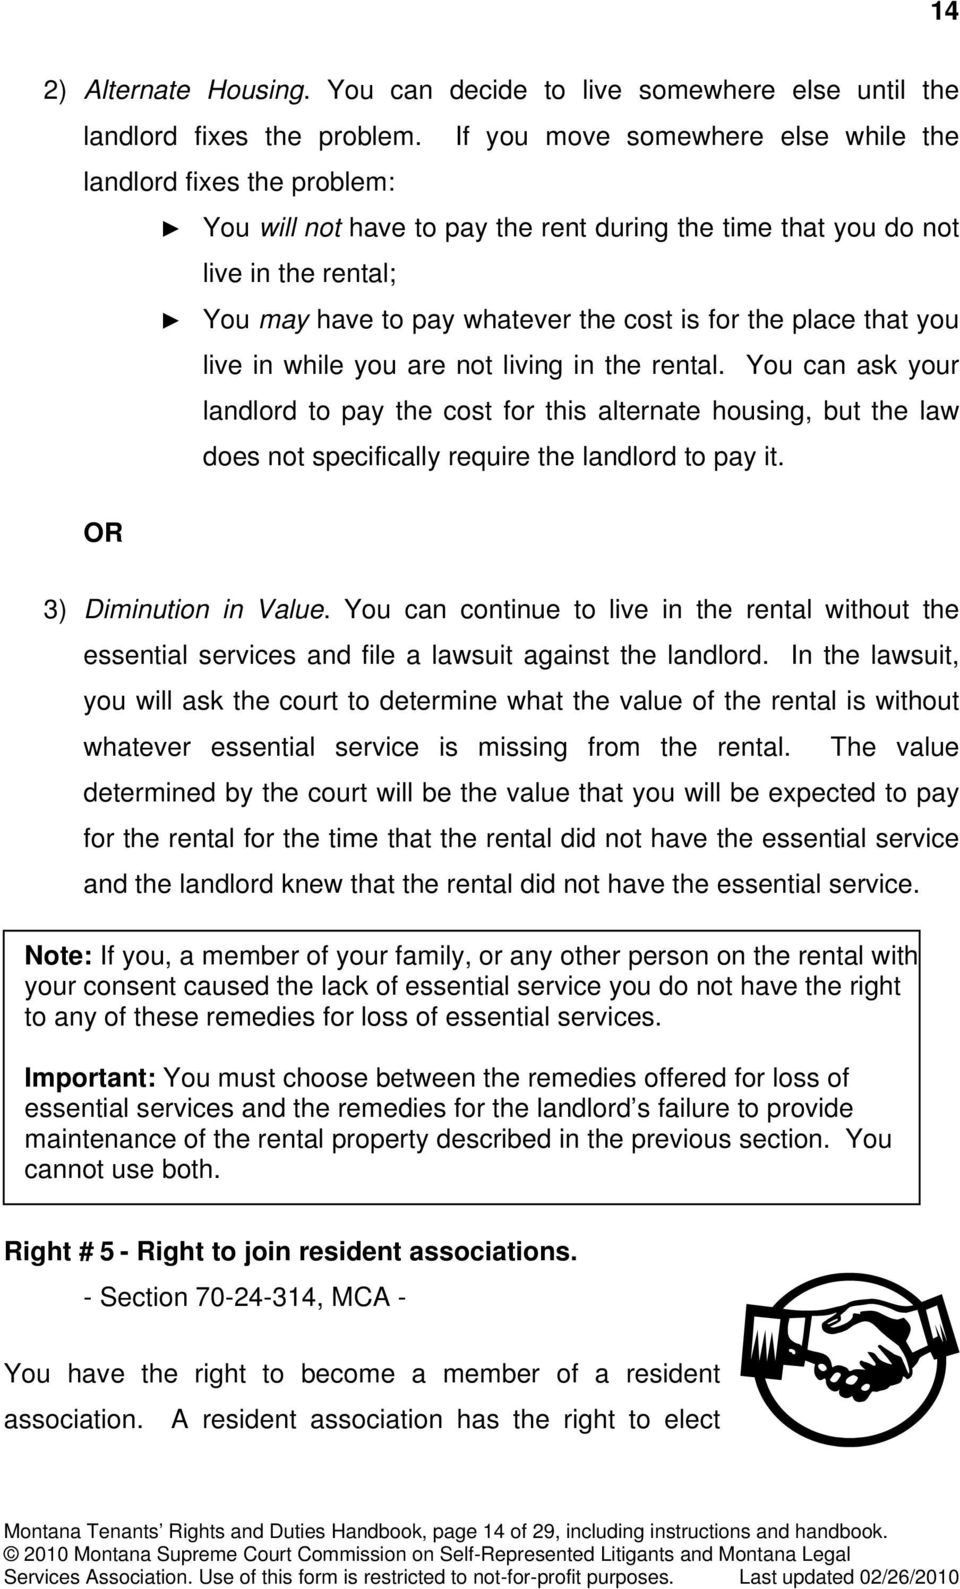 place that you live in while you are not living in the rental. You can ask your landlord to pay the cost for this alternate housing, but the law does not specifically require the landlord to pay it.